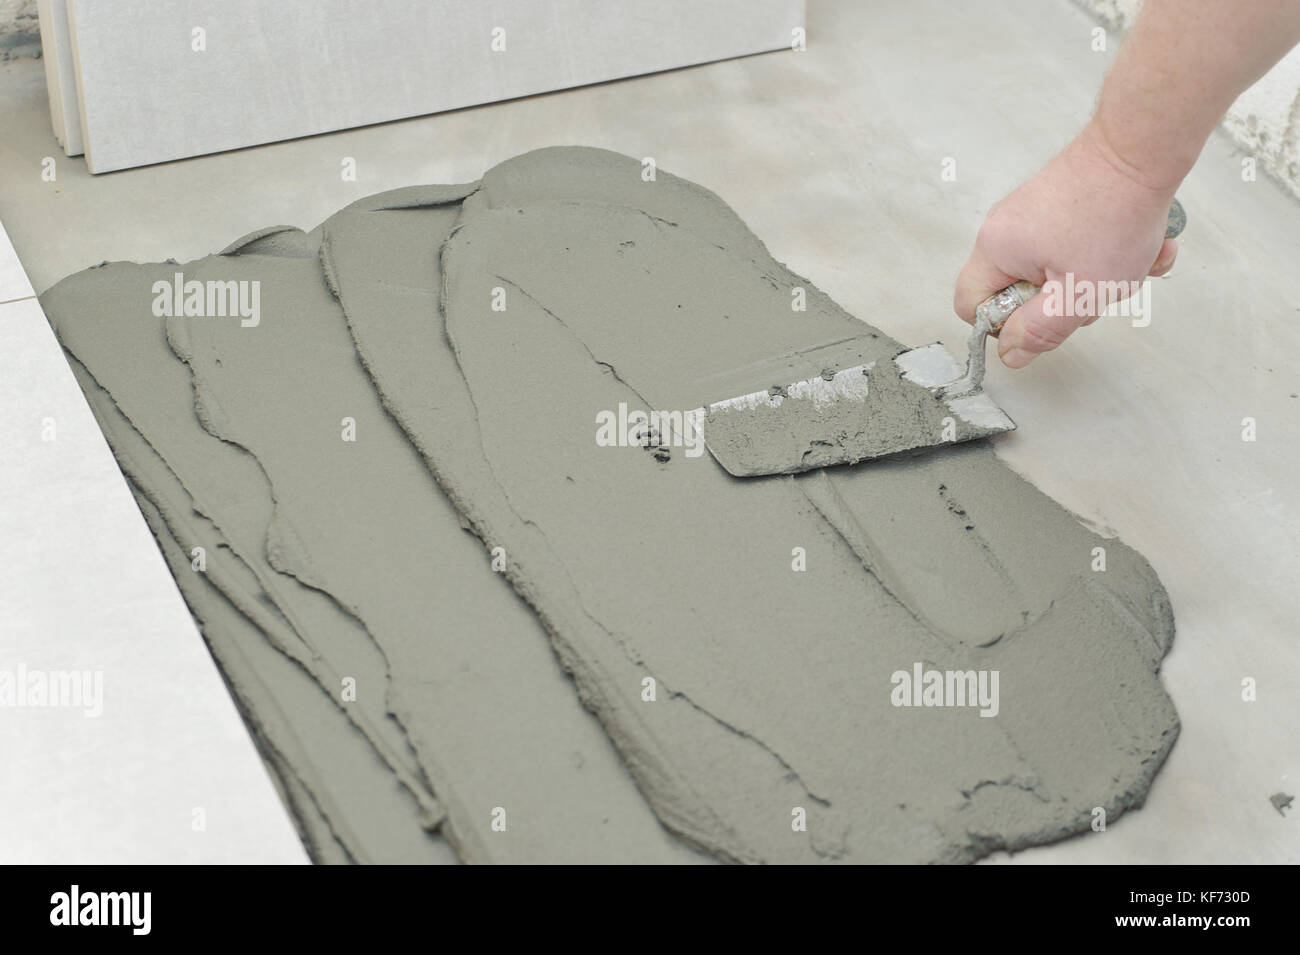 Laying Ceramic Tiles. Troweling mortar onto a concrete floor in ...